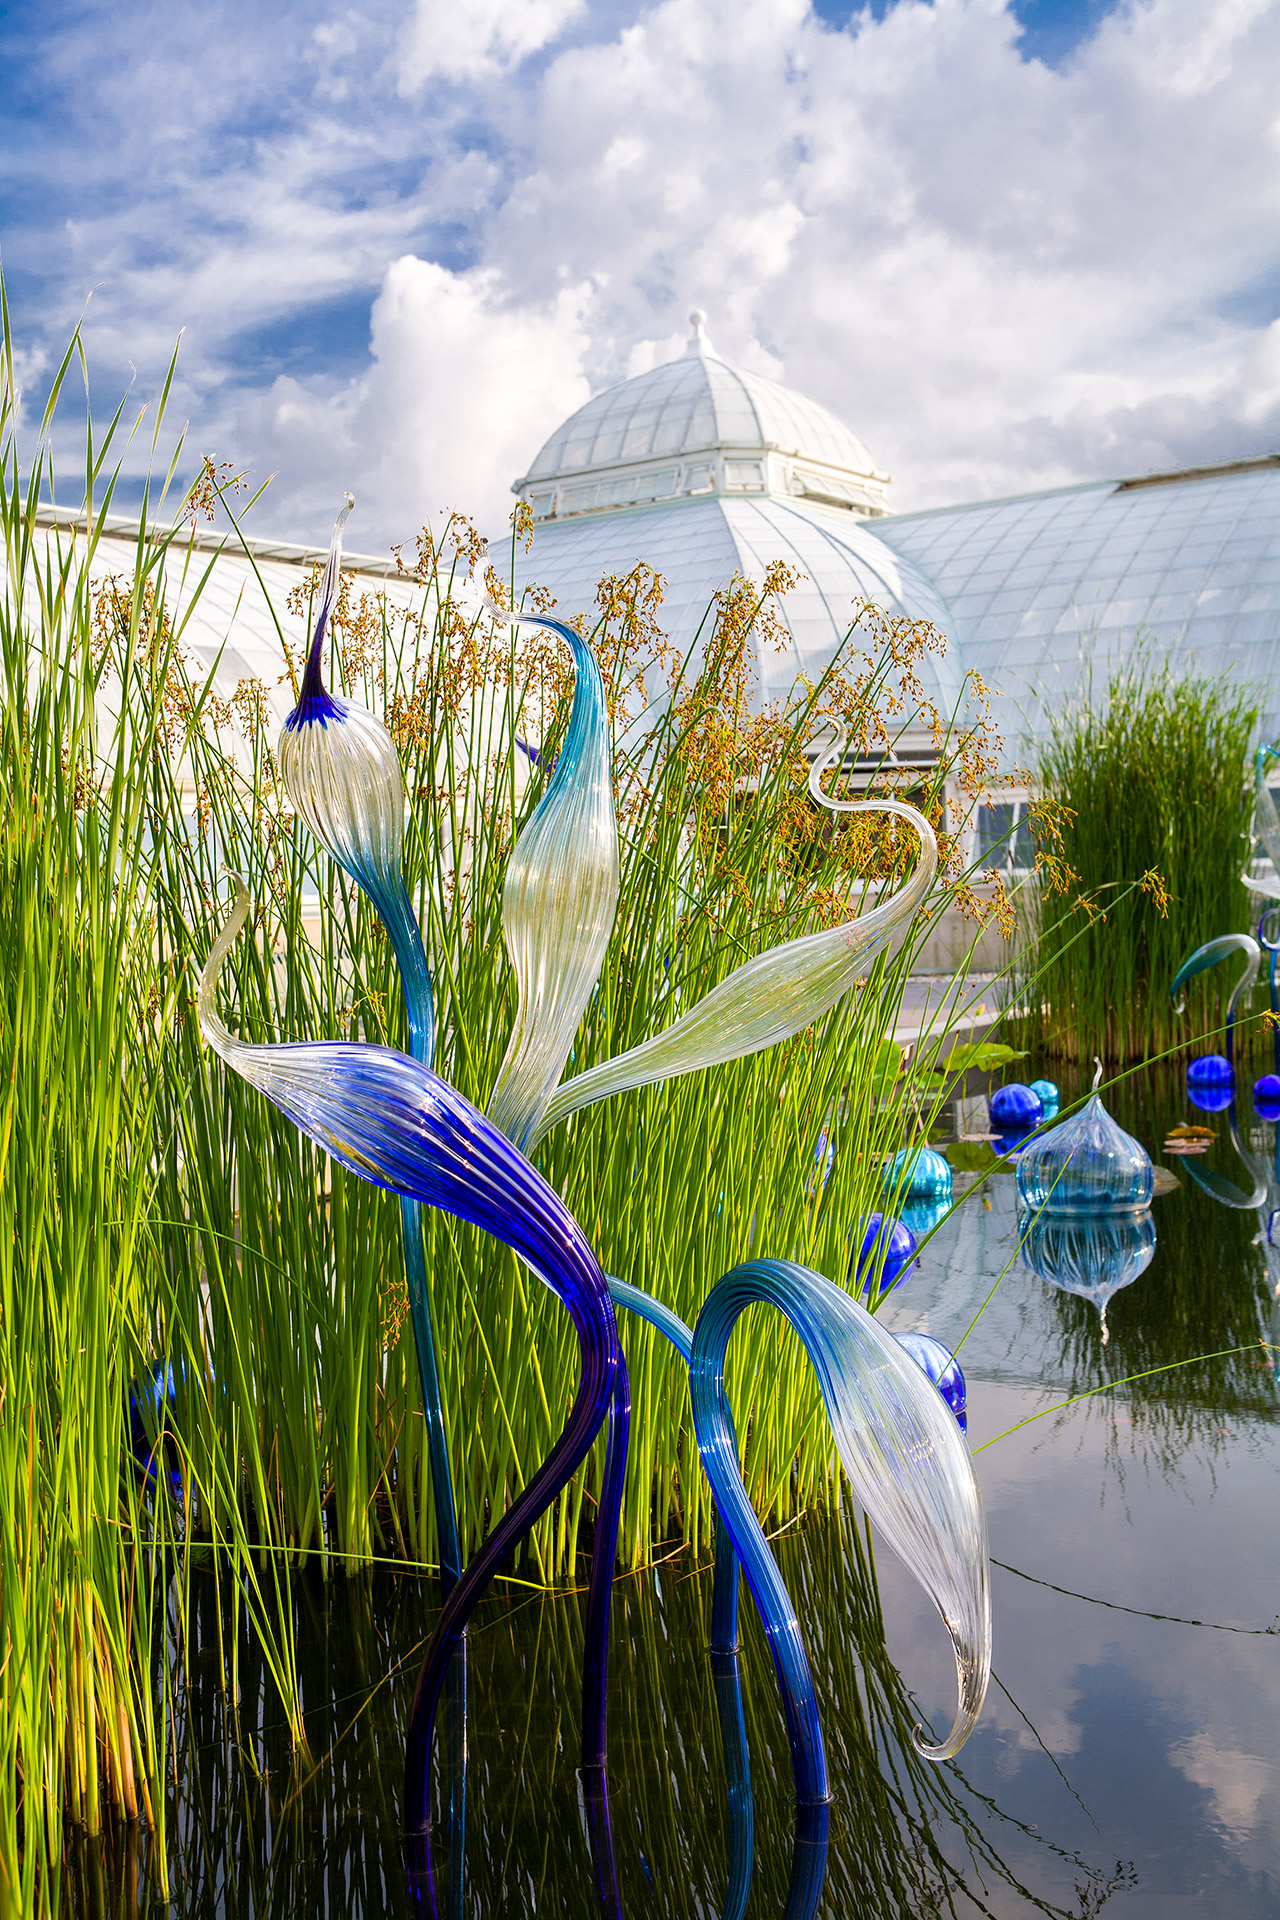 CHIHULY sculpture among water plants